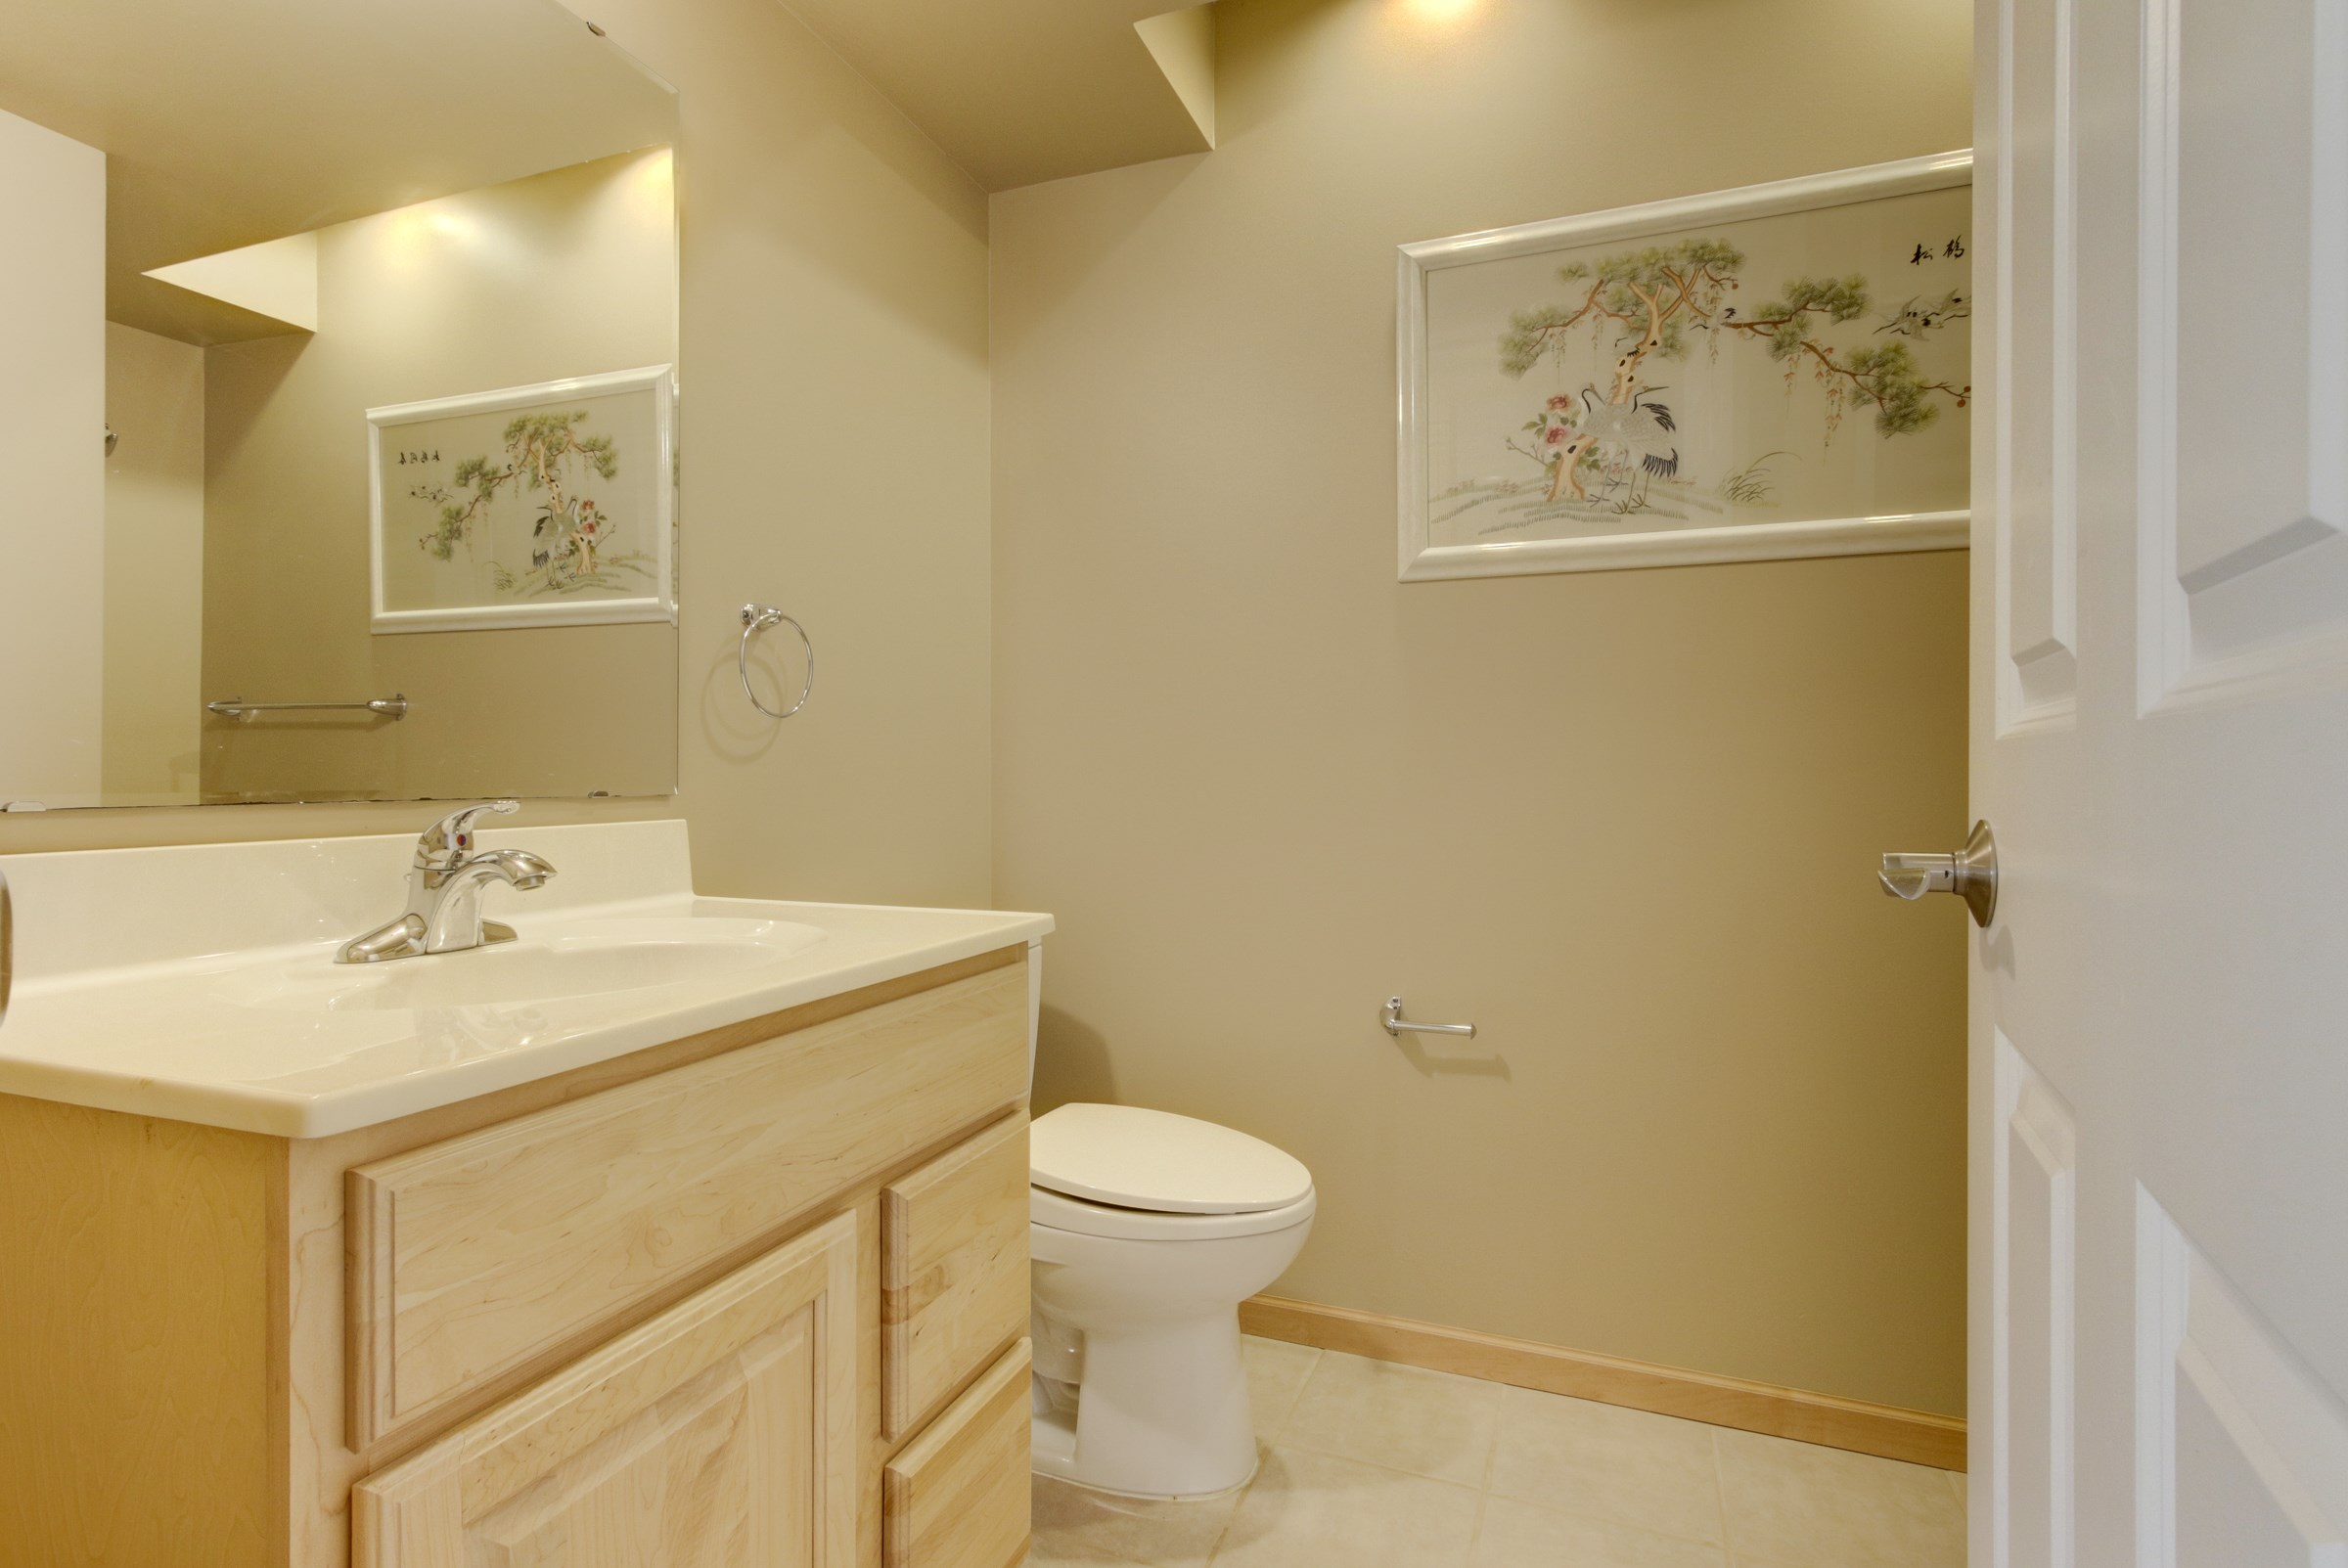 027_Lower Level Bathroom.jpg